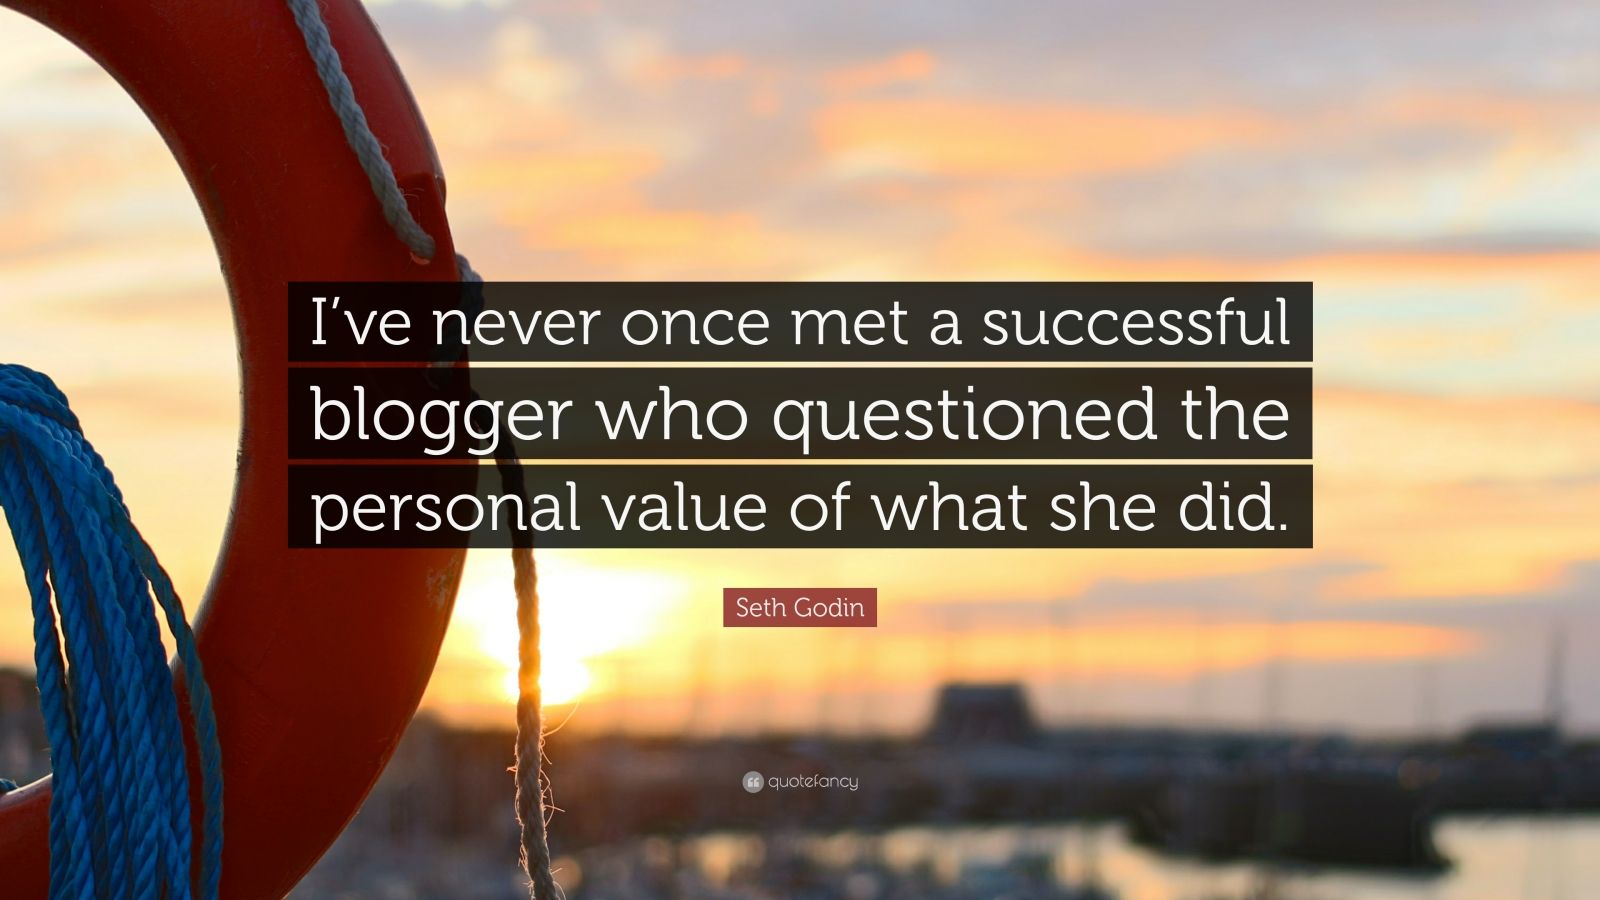 """Seth Godin Quote: """"I've never once met a successful blogger who questioned the personal value of what she did."""""""